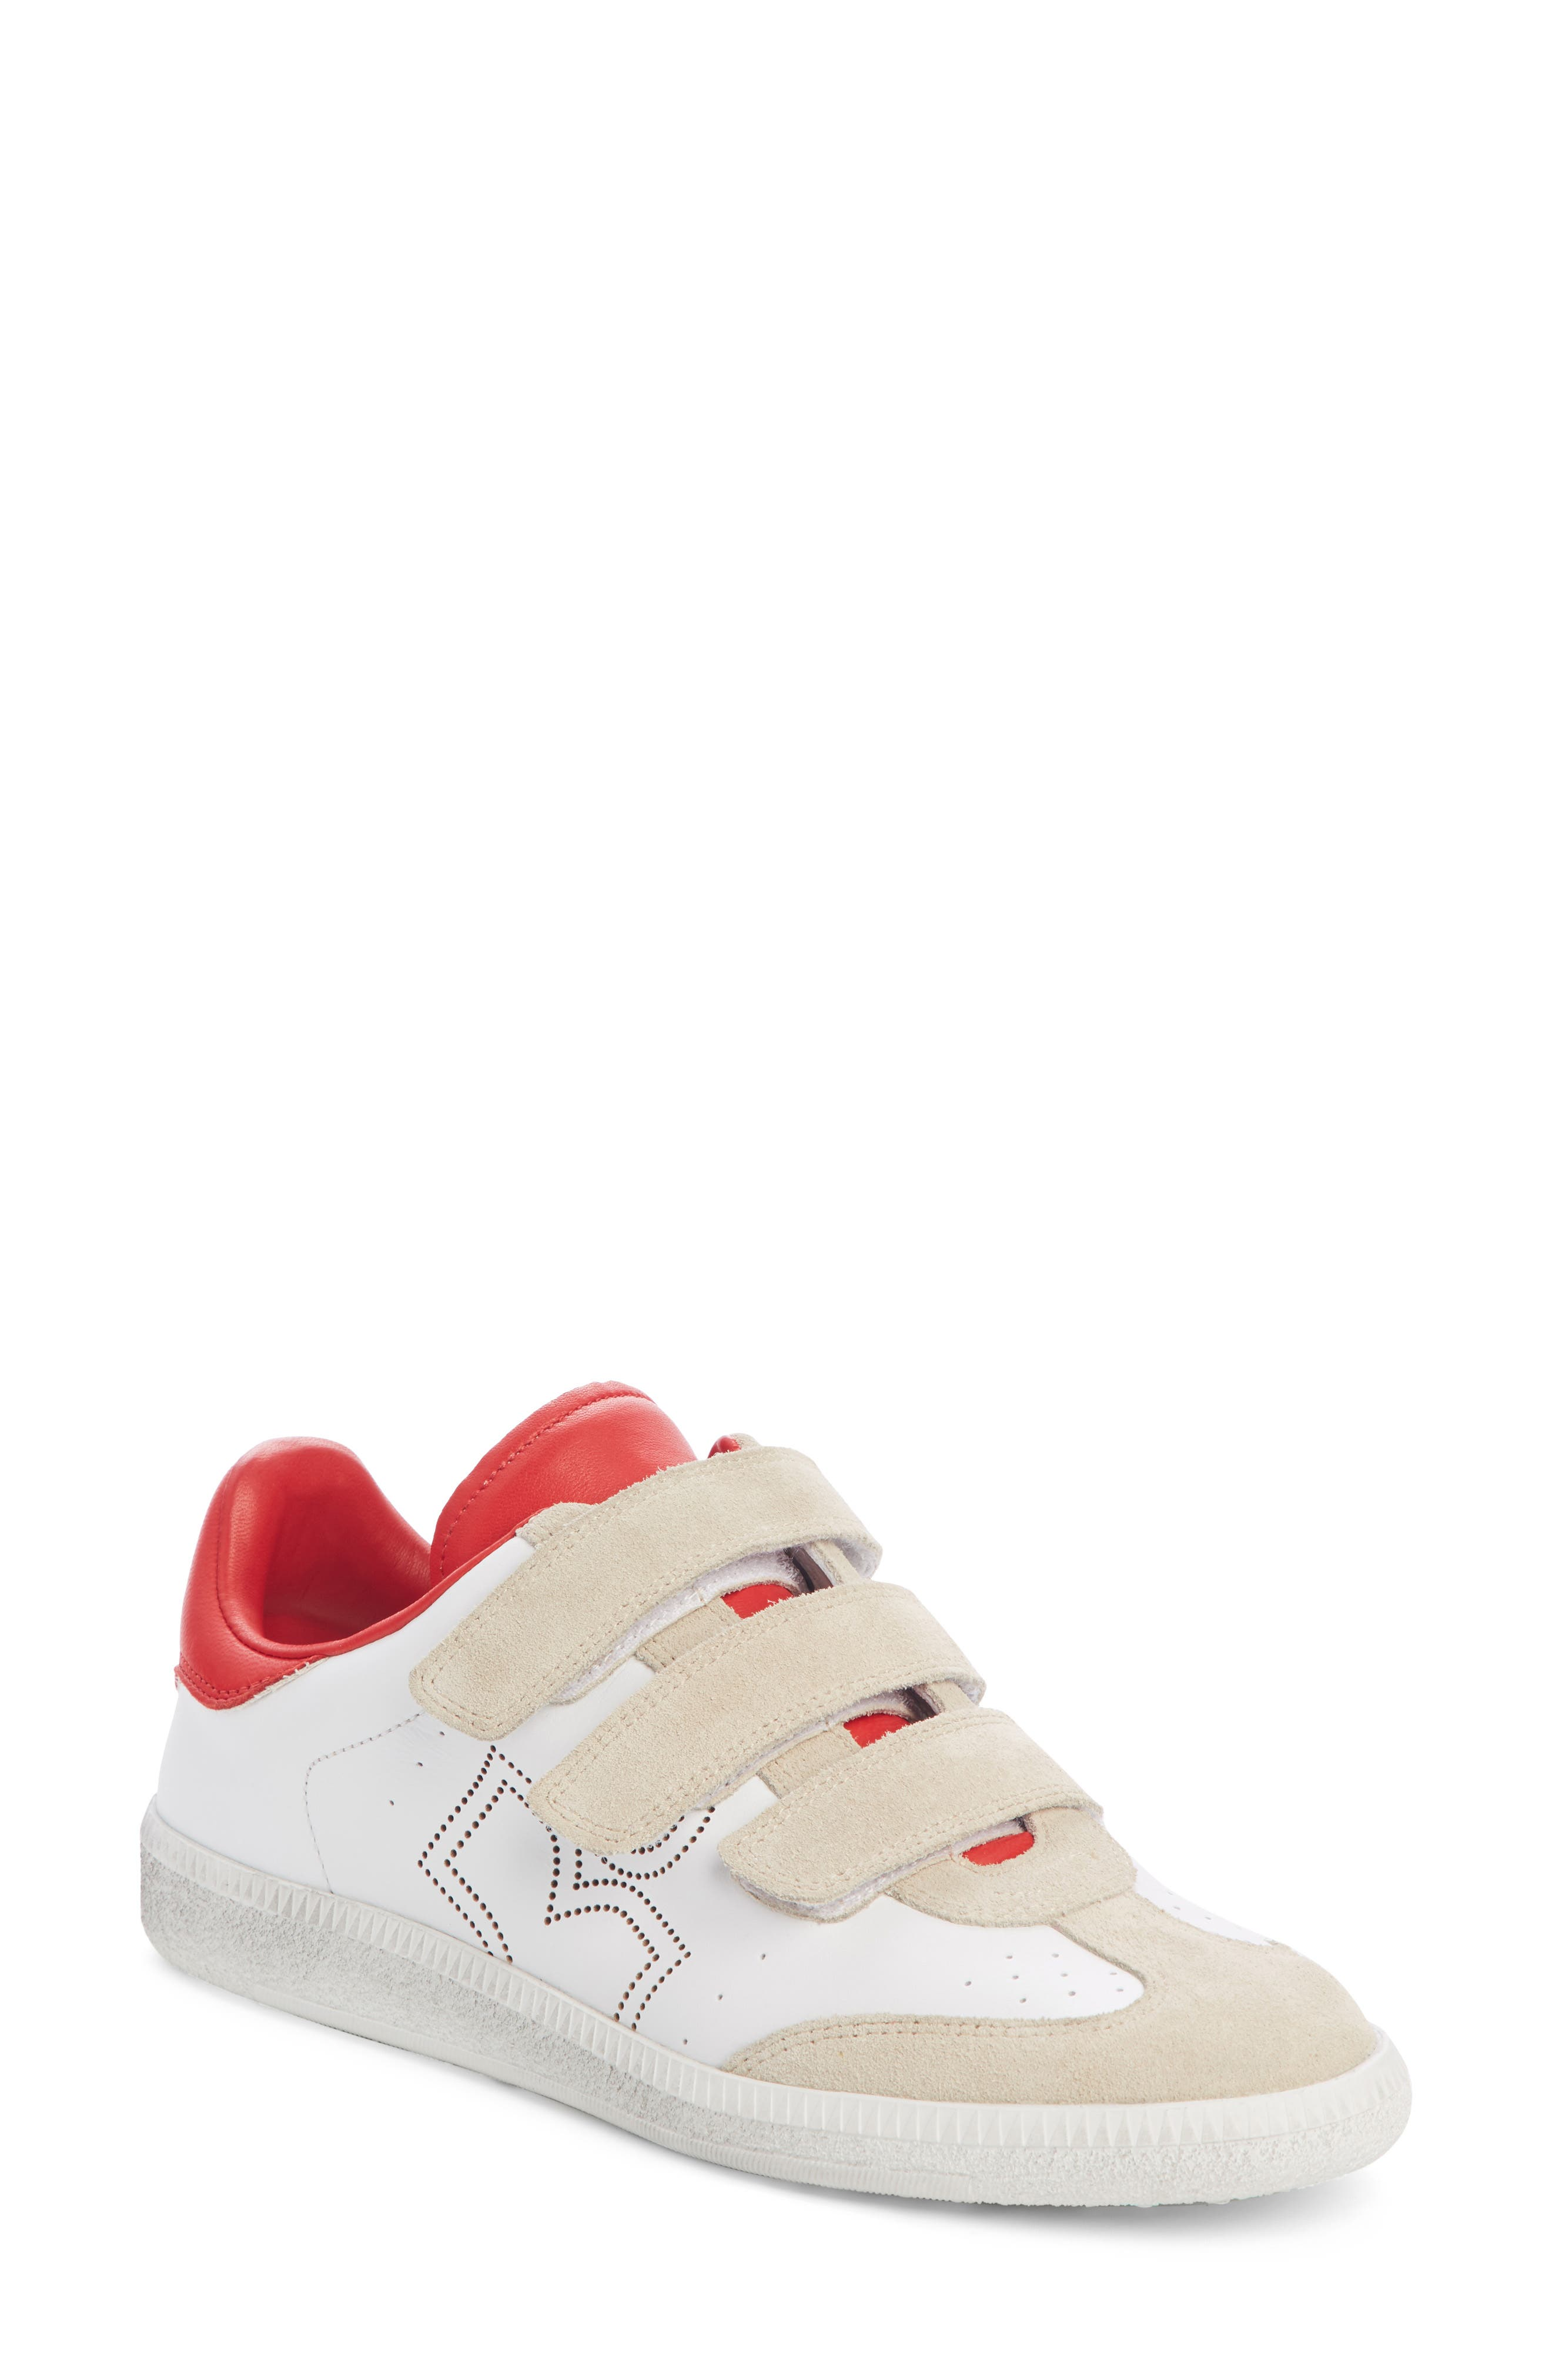 ISABEL MARANT Beth Low Top Sneaker, Main, color, WHITE / RED